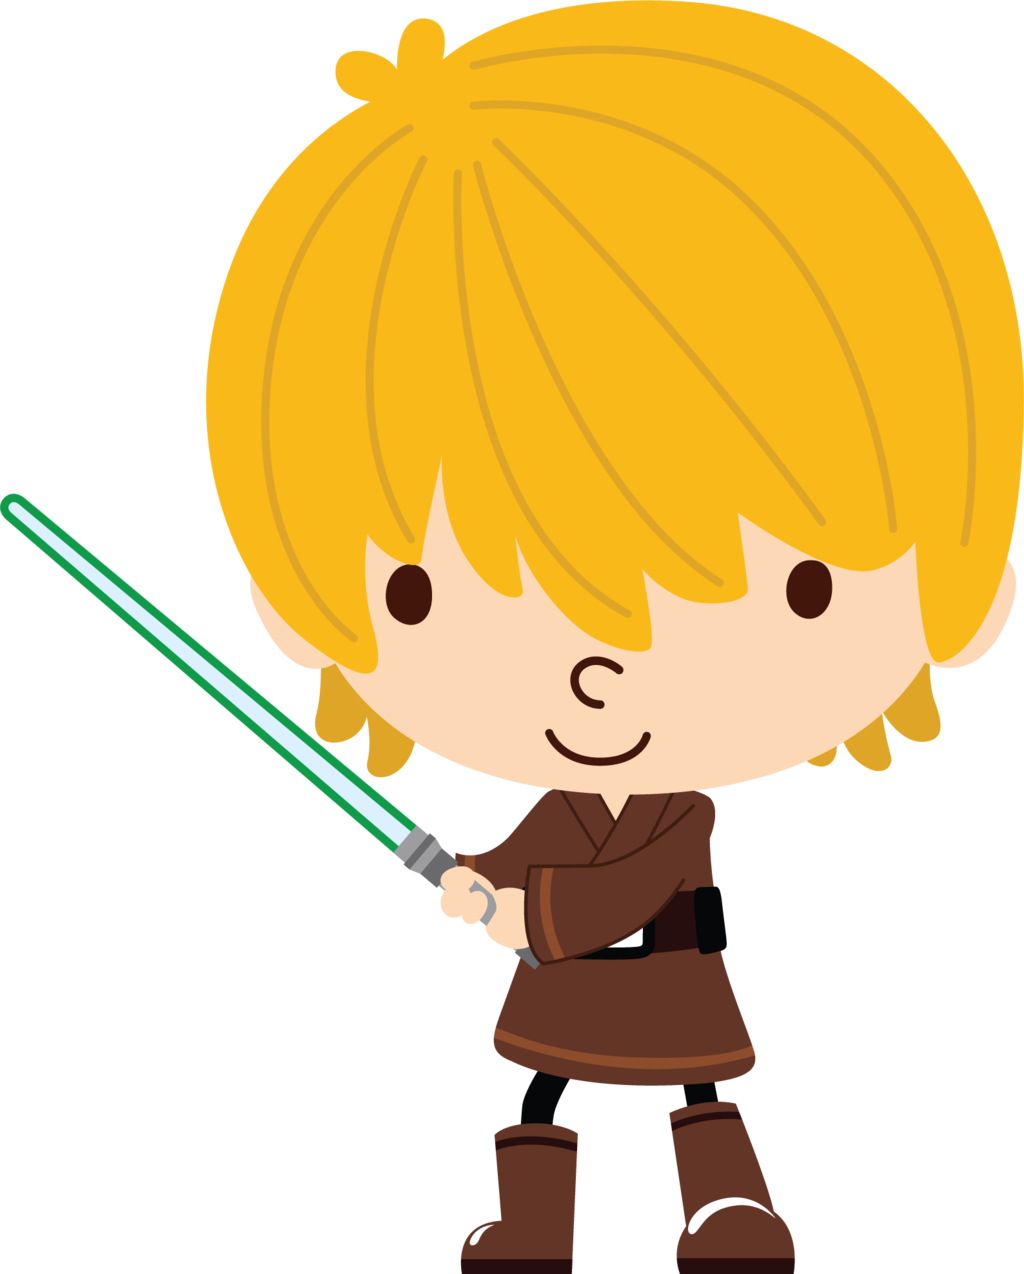 Star wars birthday clipart clip transparent Luke Skywalker by Chrispix326.deviantart.com on @DeviantArt ... clip transparent